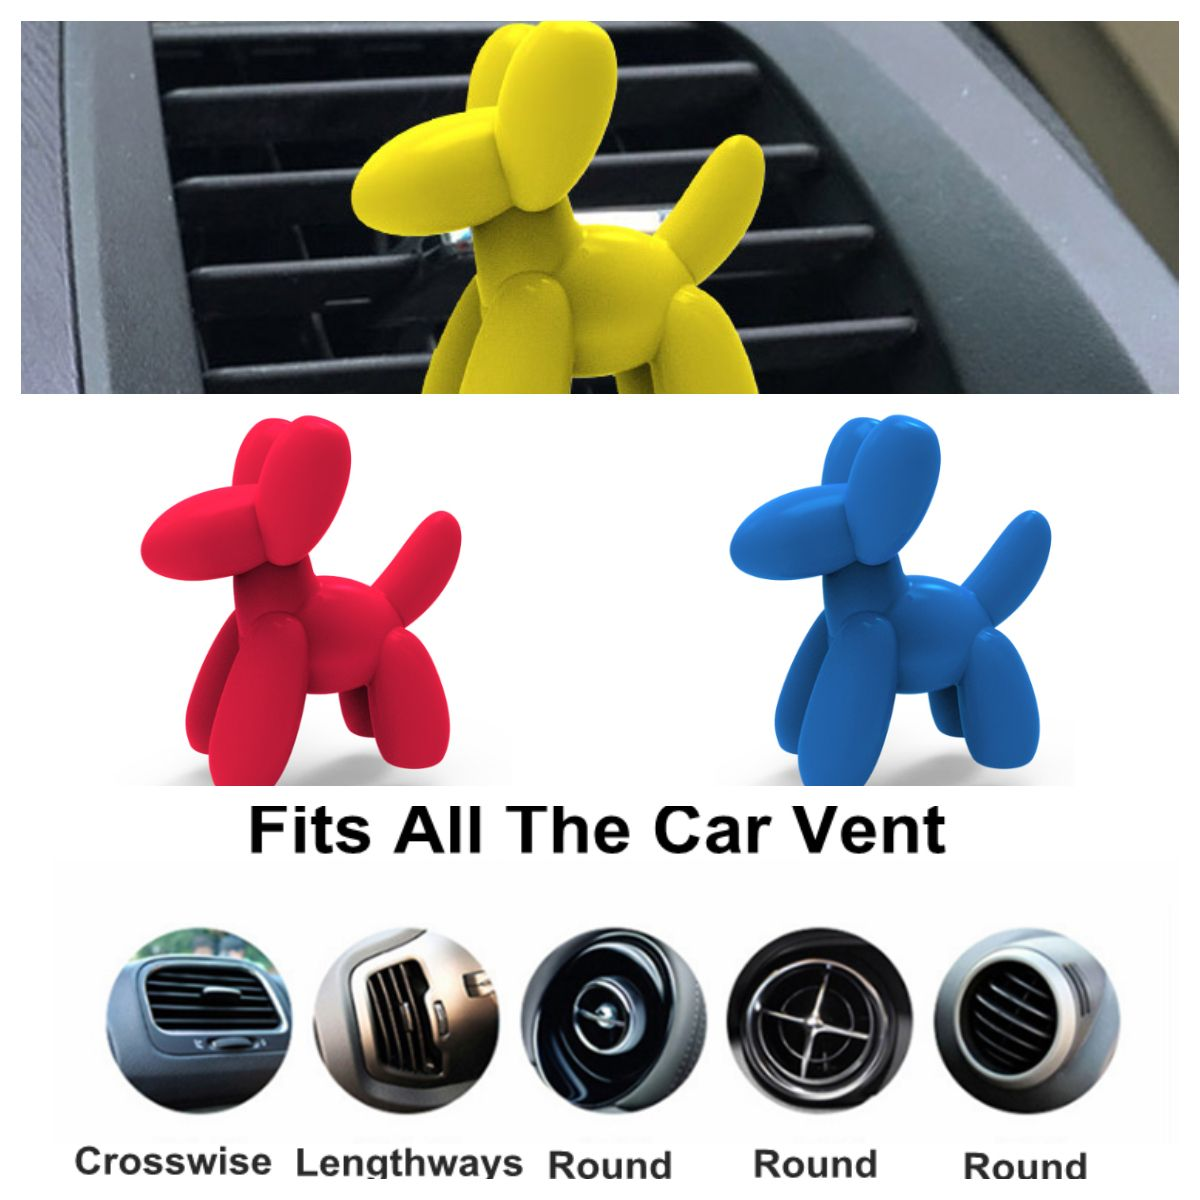 The air freshener has been designed with an easytoapply